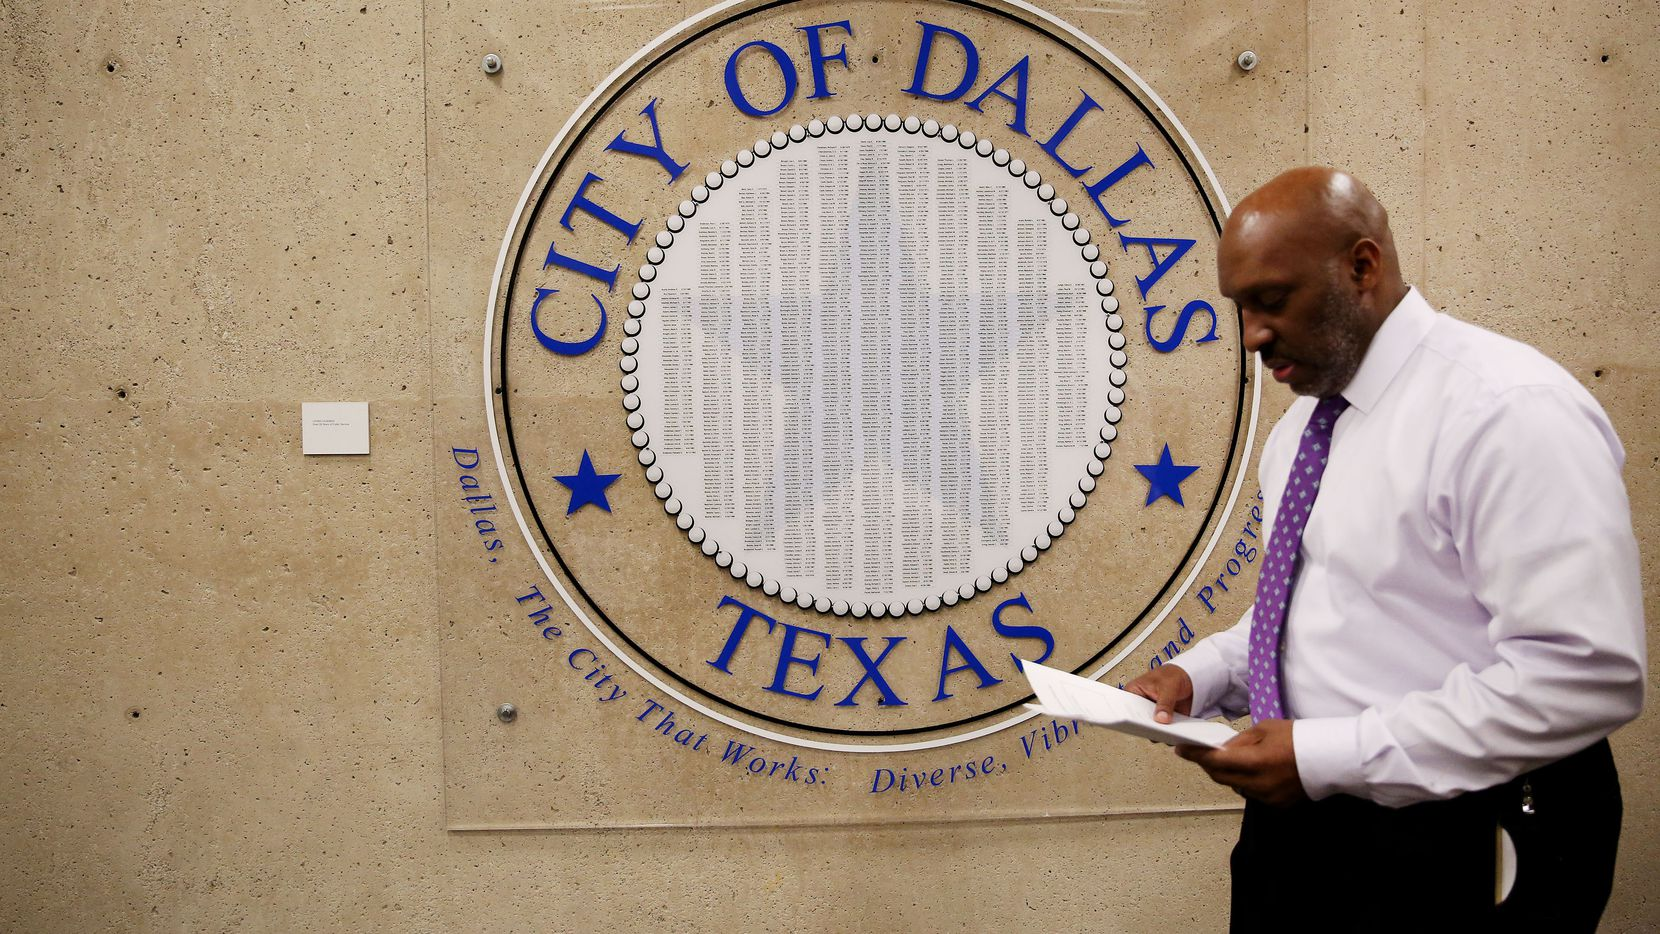 Dallas city manager T.C. Broadnax returns to his office in Dallas city hall in downtown Dallas Wednesday February 1, 2017. This was his first day on the job. Broadnax was formerly in the same role in Tacoma, Washington. He succeeds A.C. Gonzalez. (Andy Jacobsohn/The Dallas Morning News)